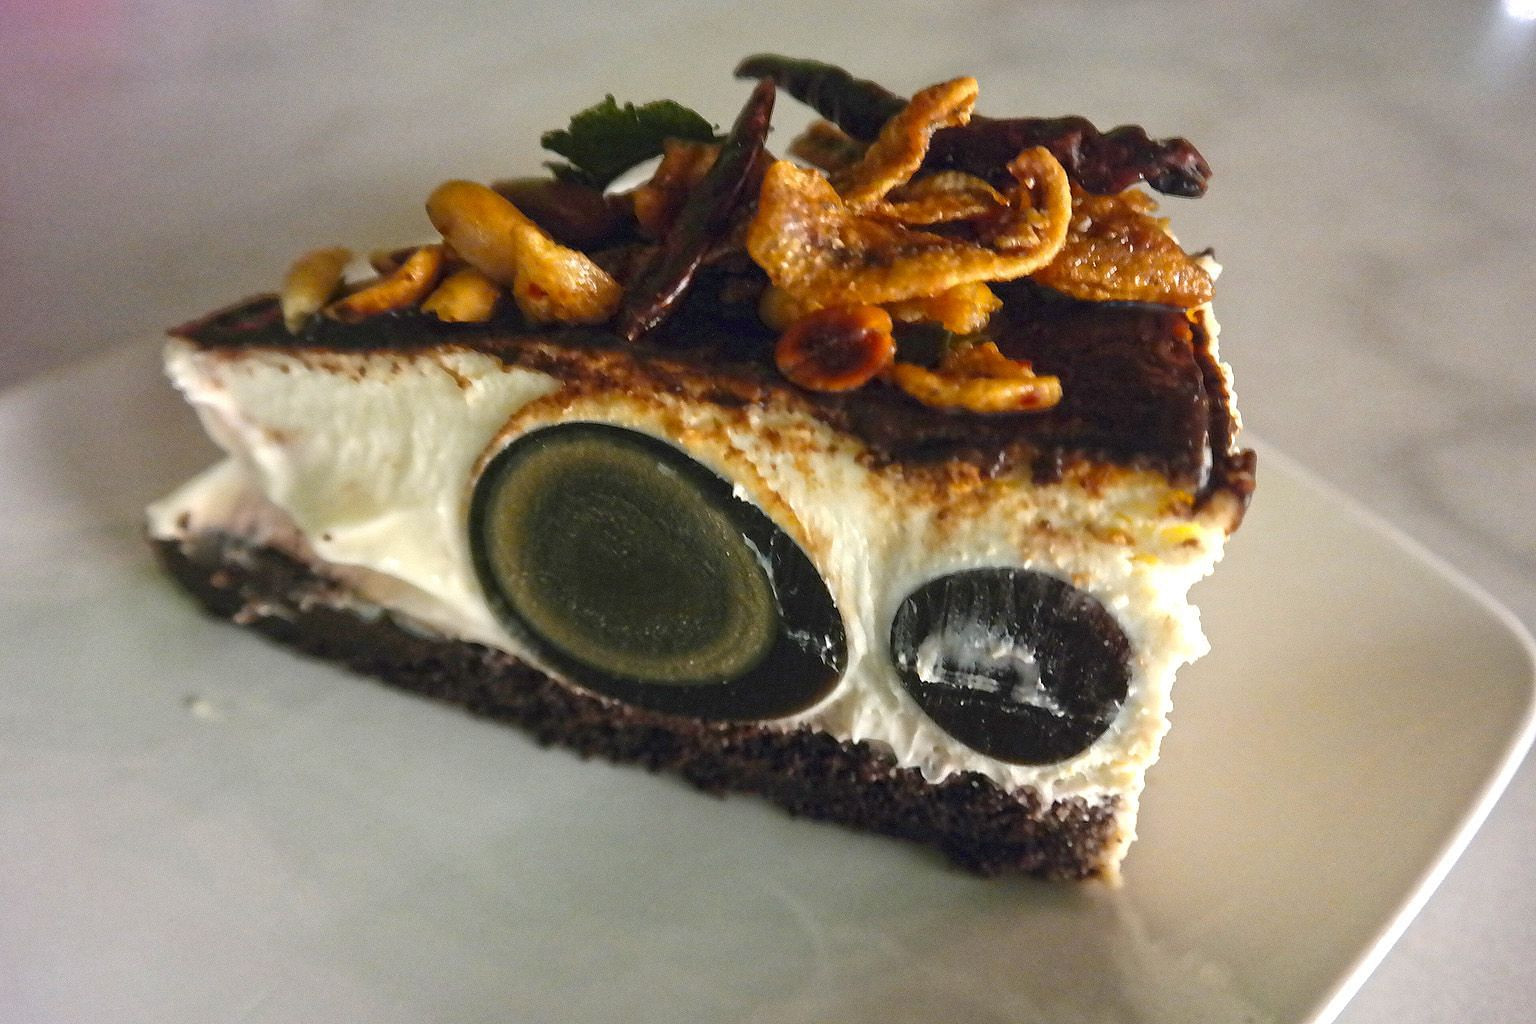 Moody Cow Cafe Penang's Black Moon cheesecake has century egg in the filling and an ikan bilis topping.